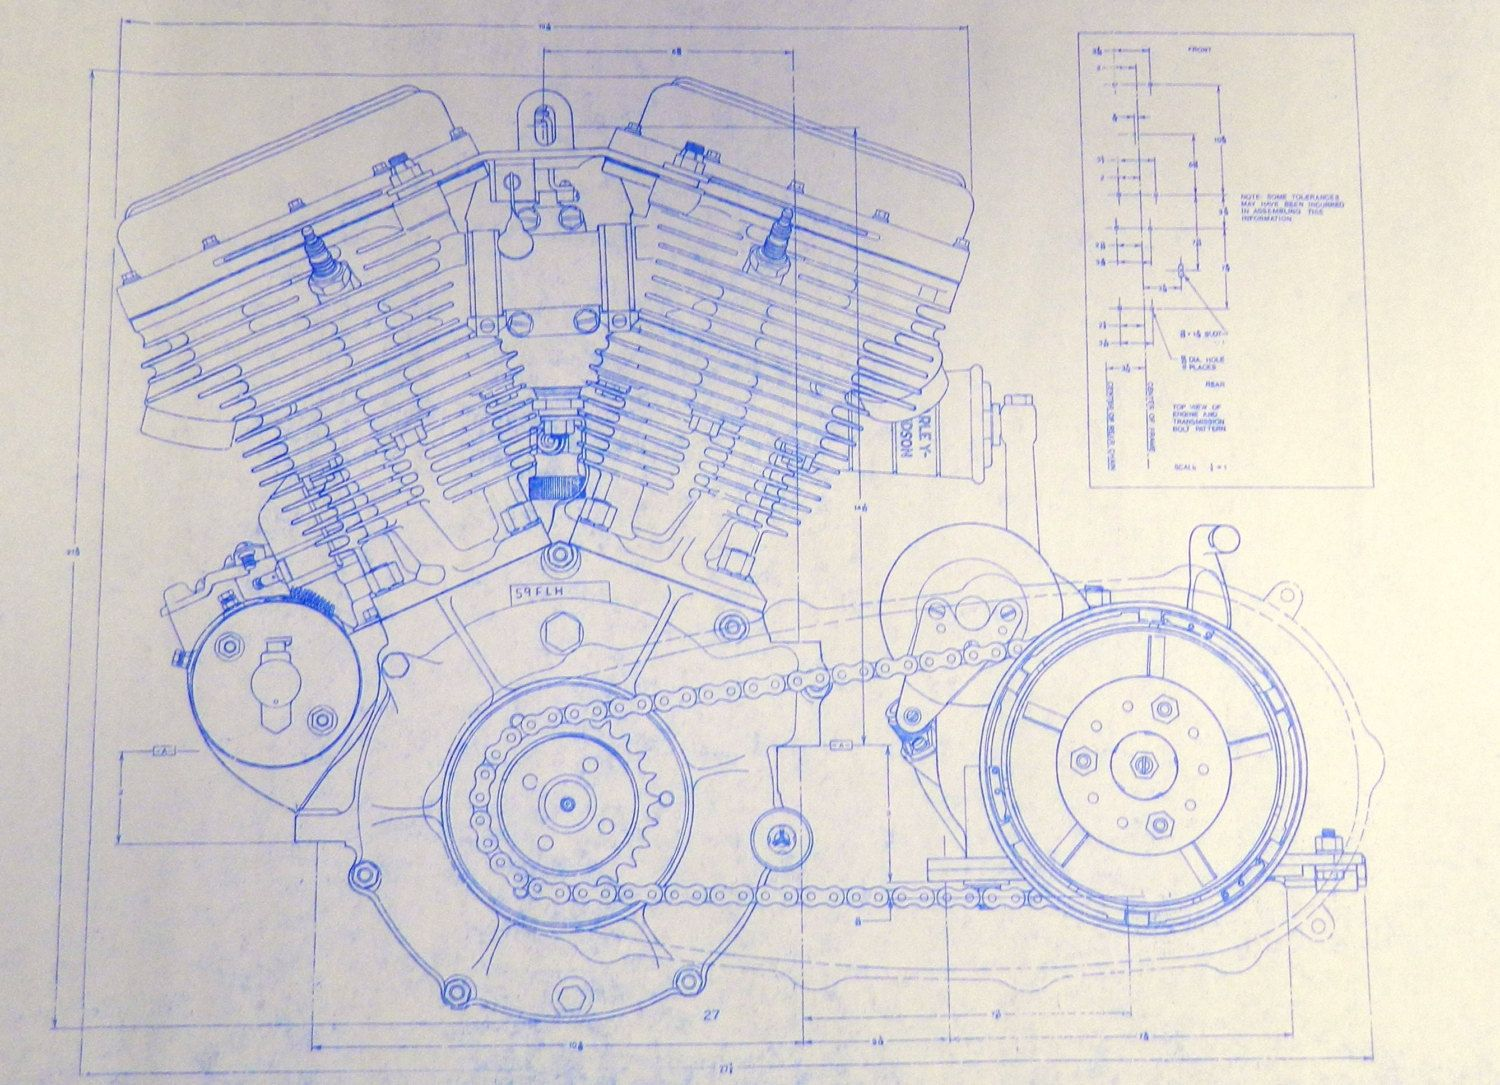 Harley davidson 74 ci moteur 2 feuilles par blueprintplace sur harley davidson 74 ci engine 2 sheets blueprint by blueprintplace pooptronica